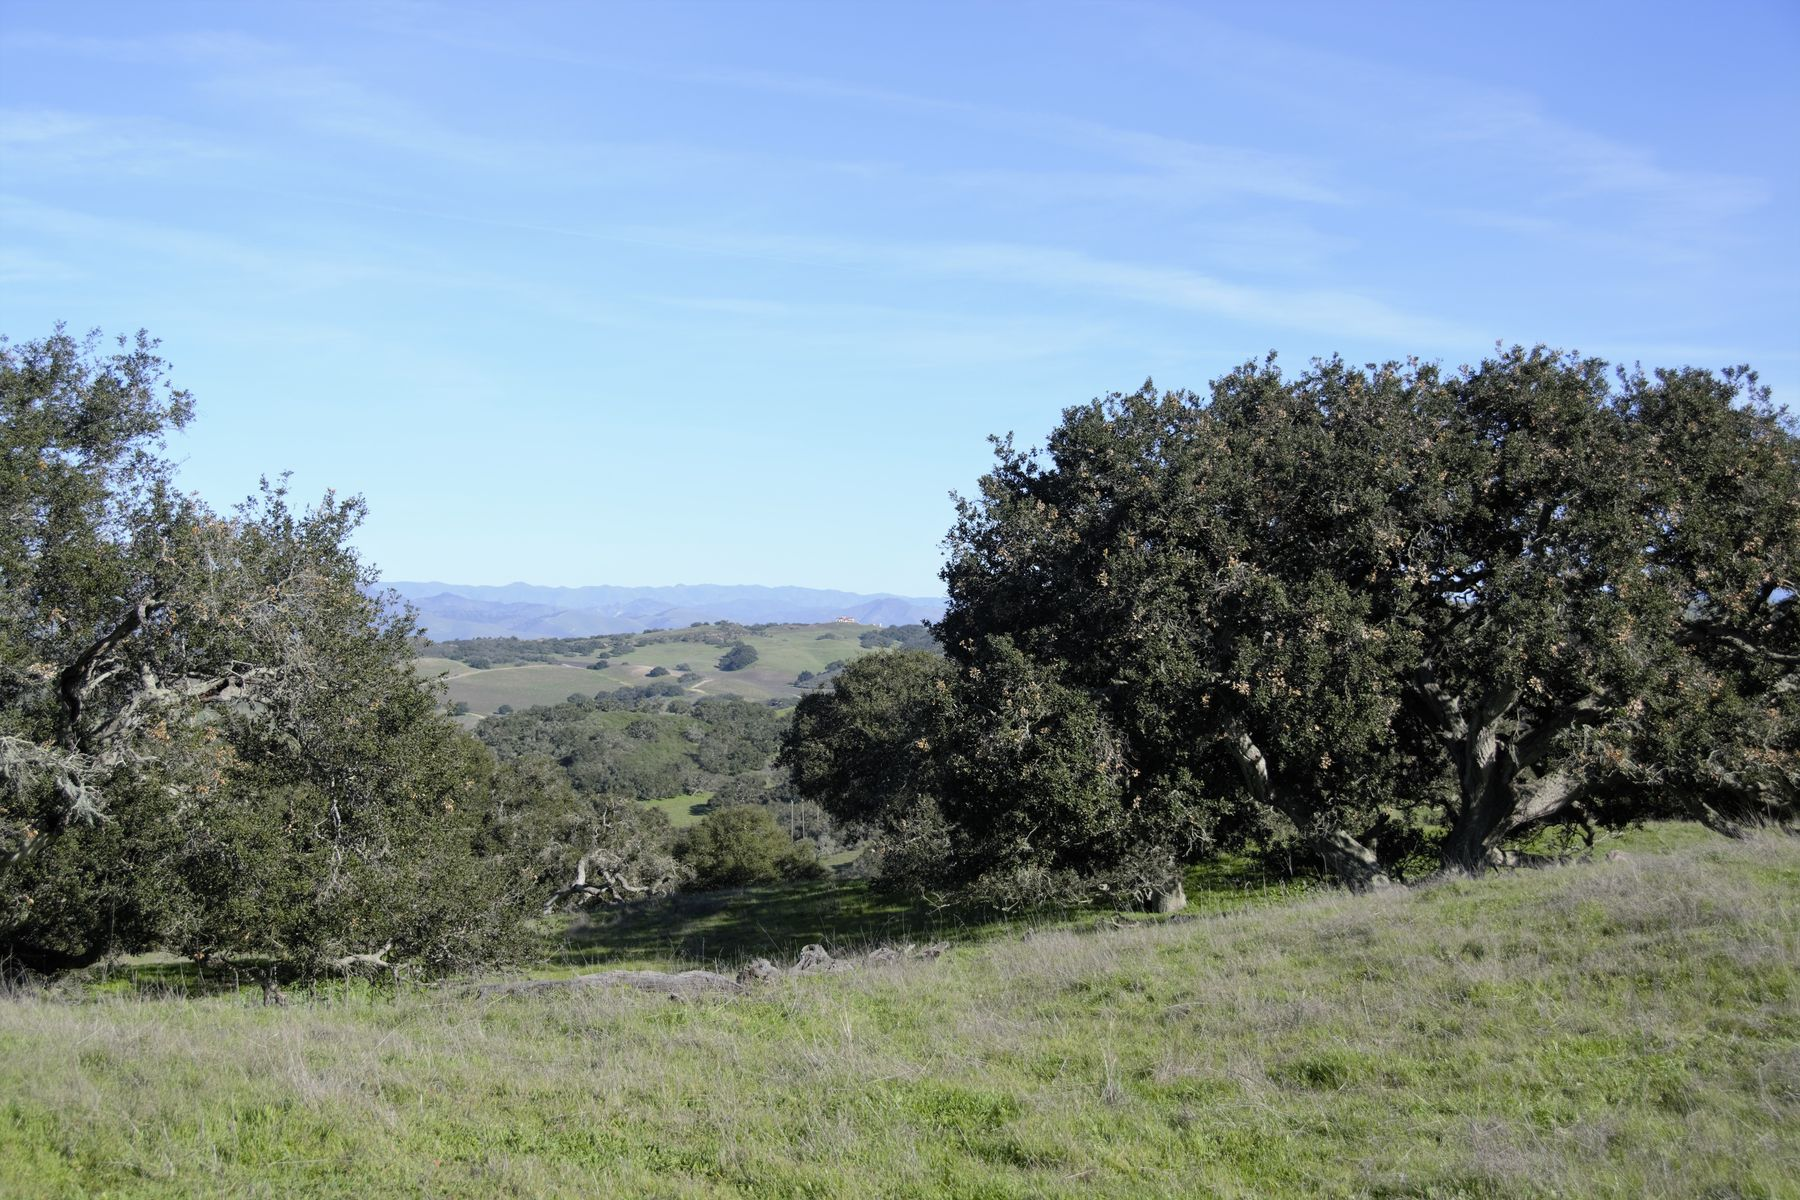 Land for Sale at Amazing Opportunity 000 Hwy 101 Orcutt, California 93455 United States